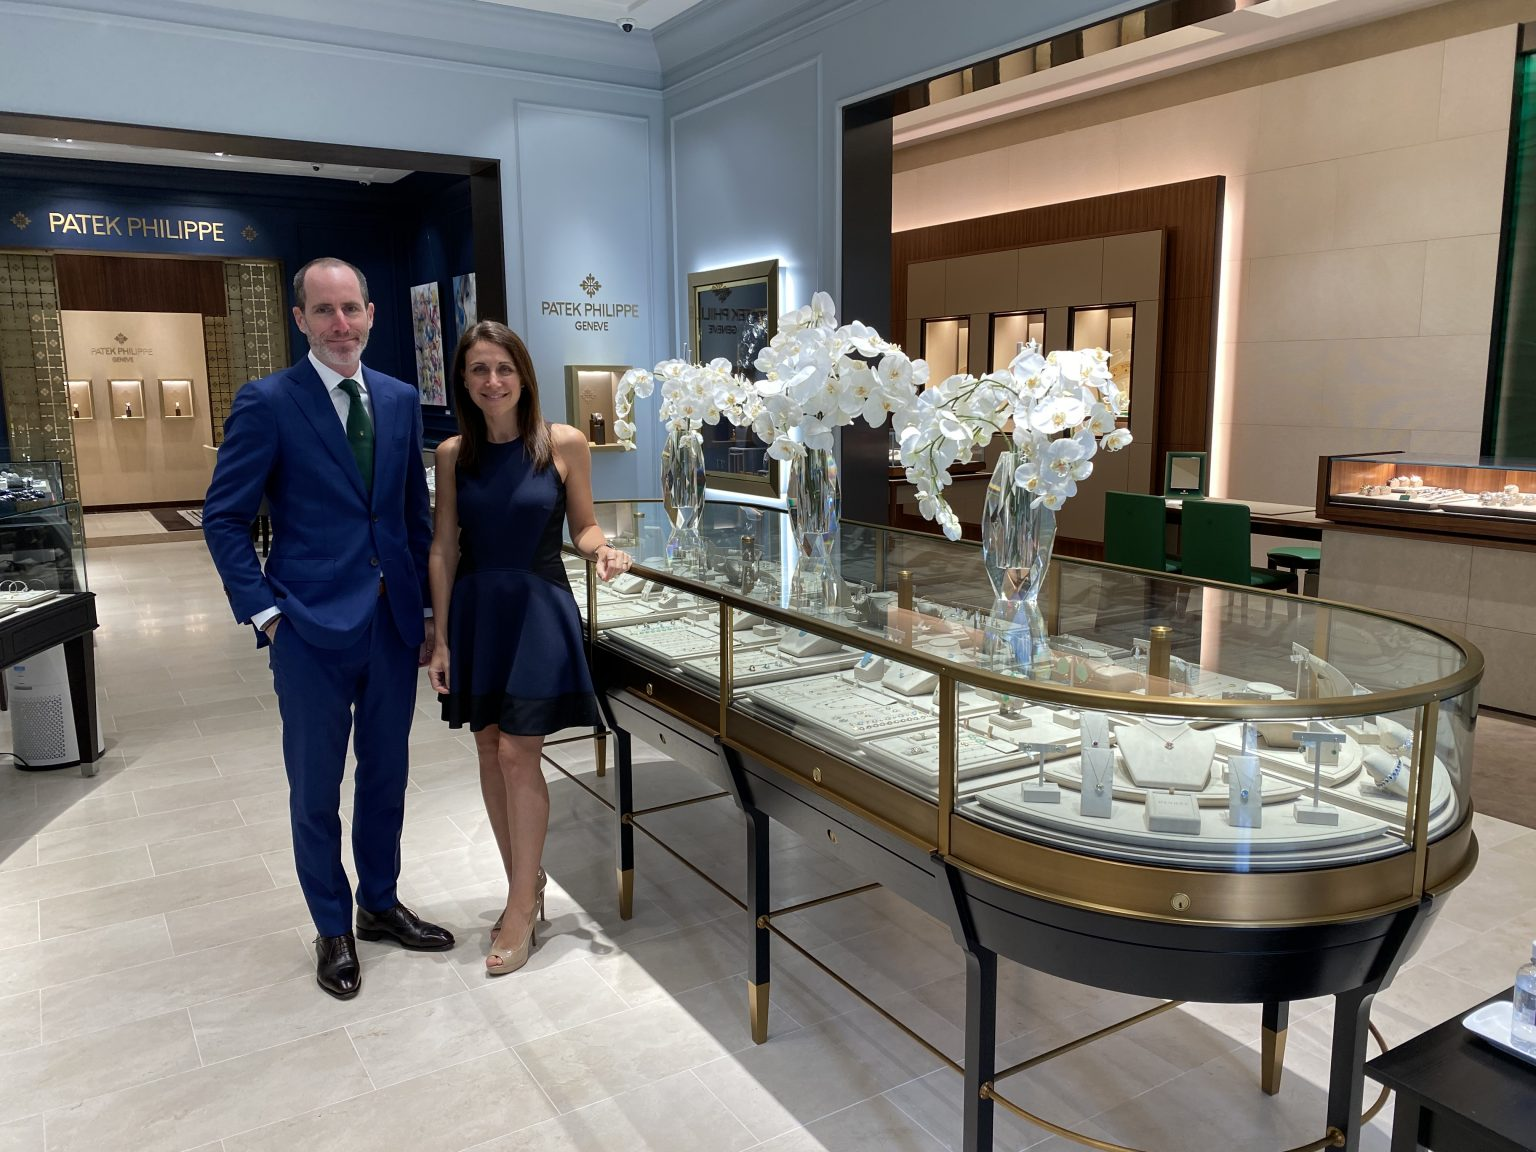 THE BIG INTERVIEW WITH WATCHPRO MAGAZINE: KIRK JEWELERS MOVES UPMARKET FROM DOWNTOWN MIAMI